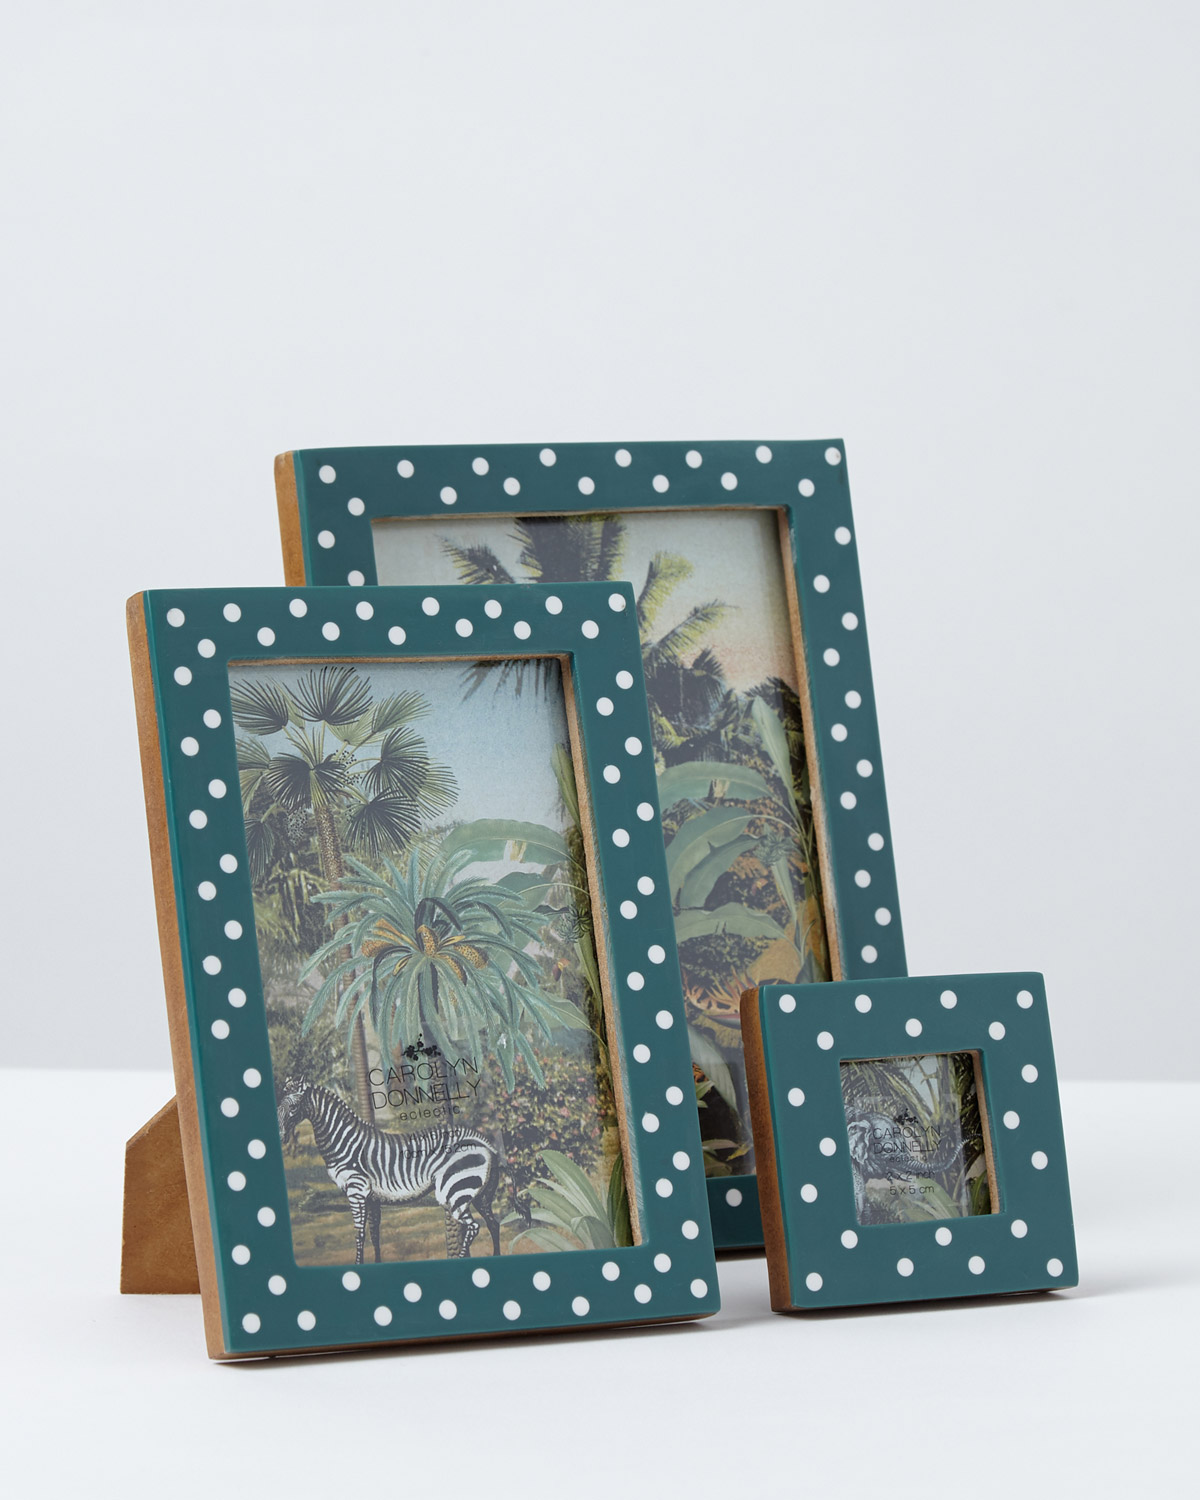 Dunnes Stores Green Carolyn Donnelly Eclectic Polka Dot Frames